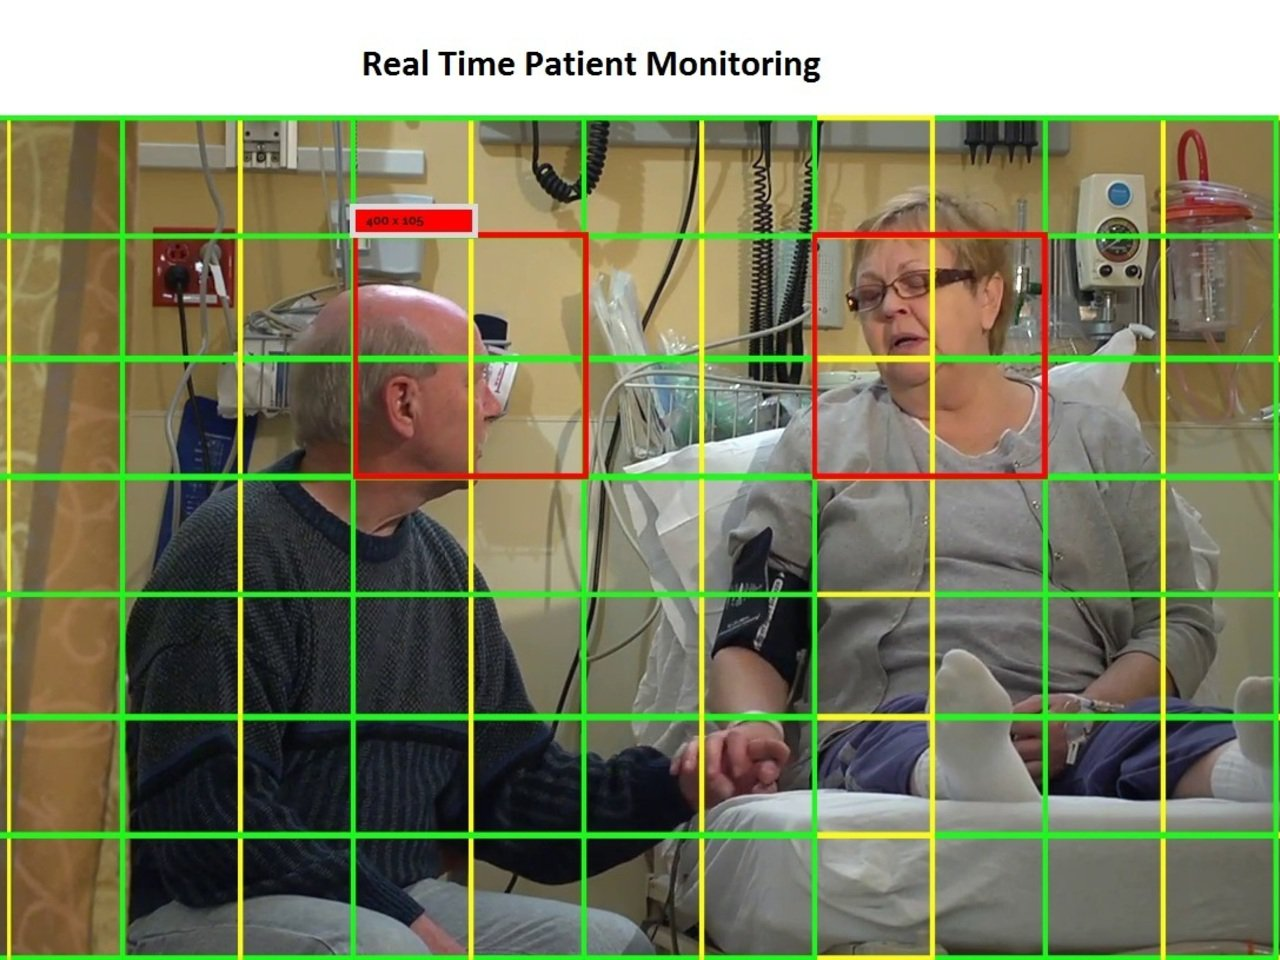 Innovative Monitoring System for TeleICU Patients using Video Processing & Deep Learning